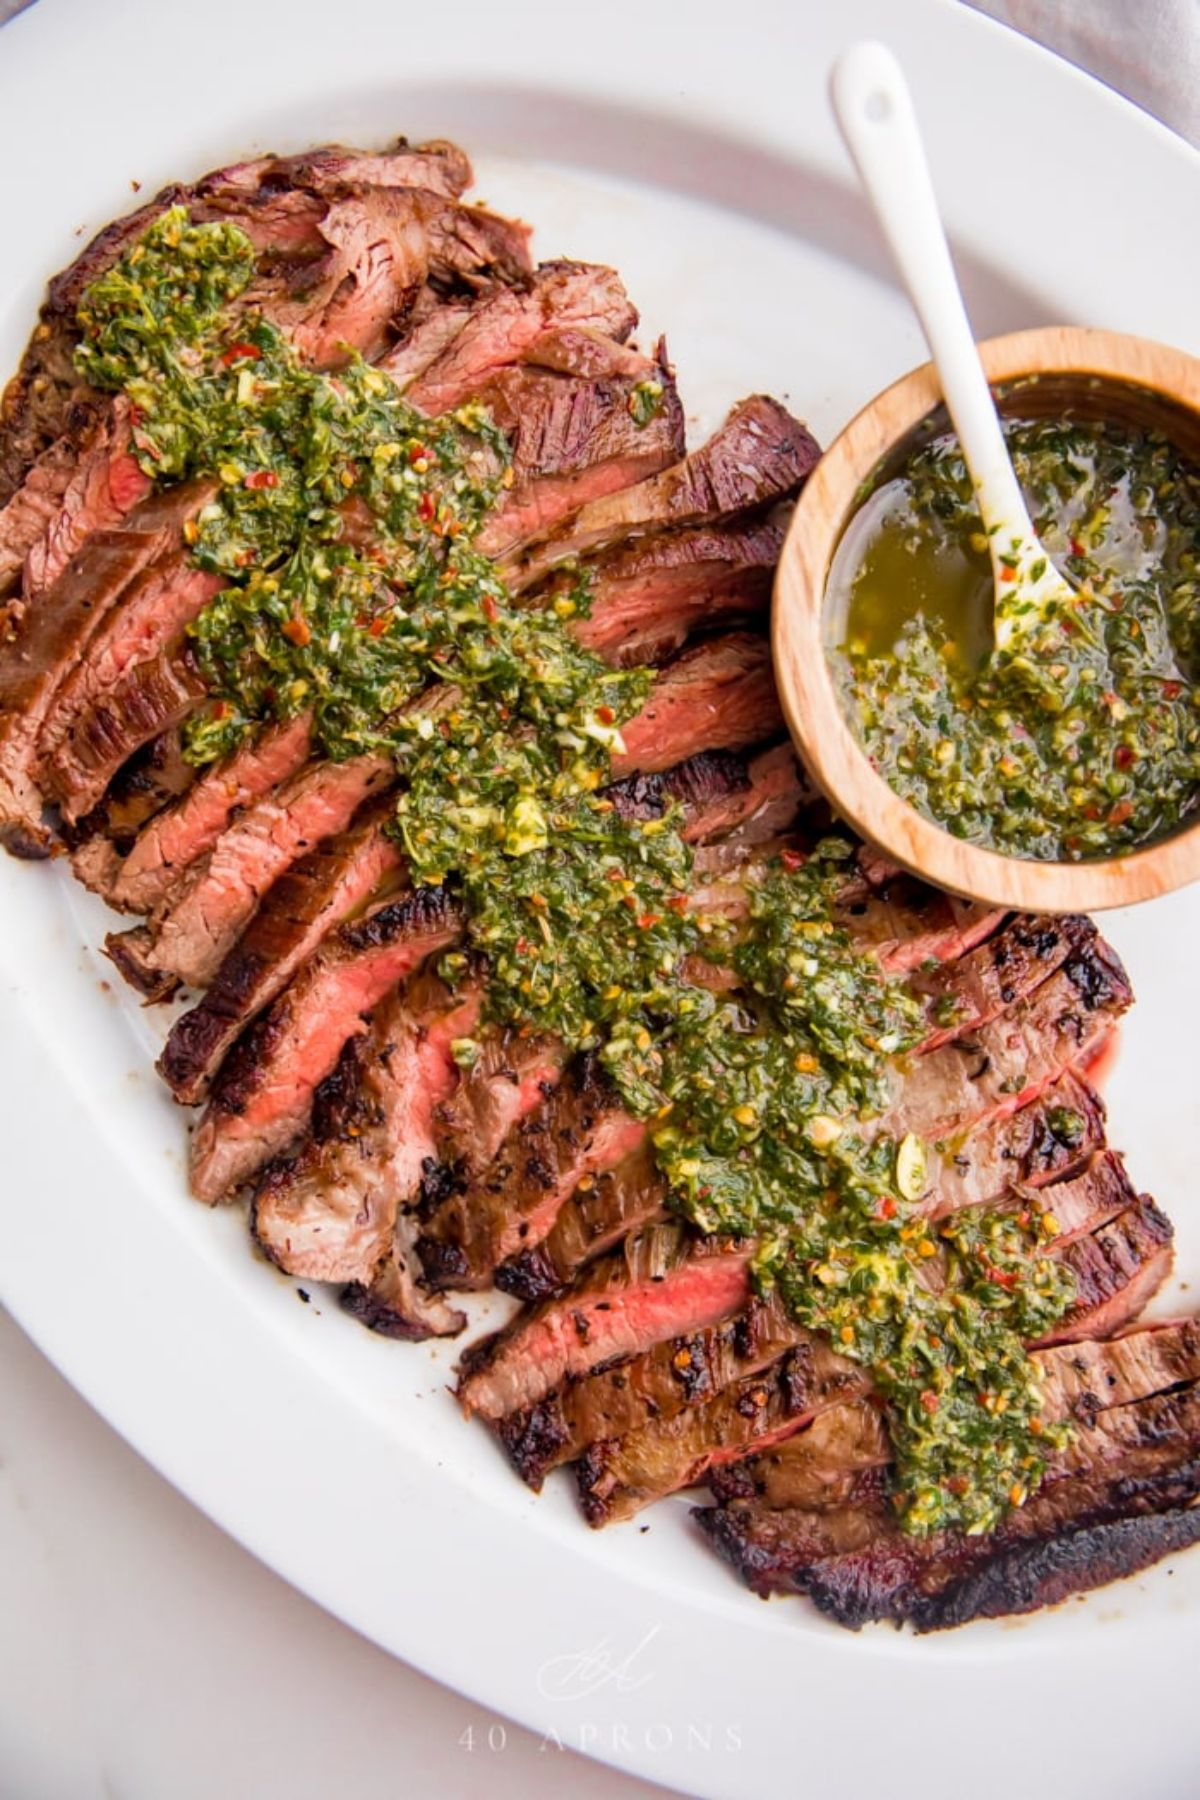 An oval white plate holds slices of rare steak, drizzled over with chiichurri sauce. A wooden pot of the sauce sits on the right of the plate with a white spoon in it